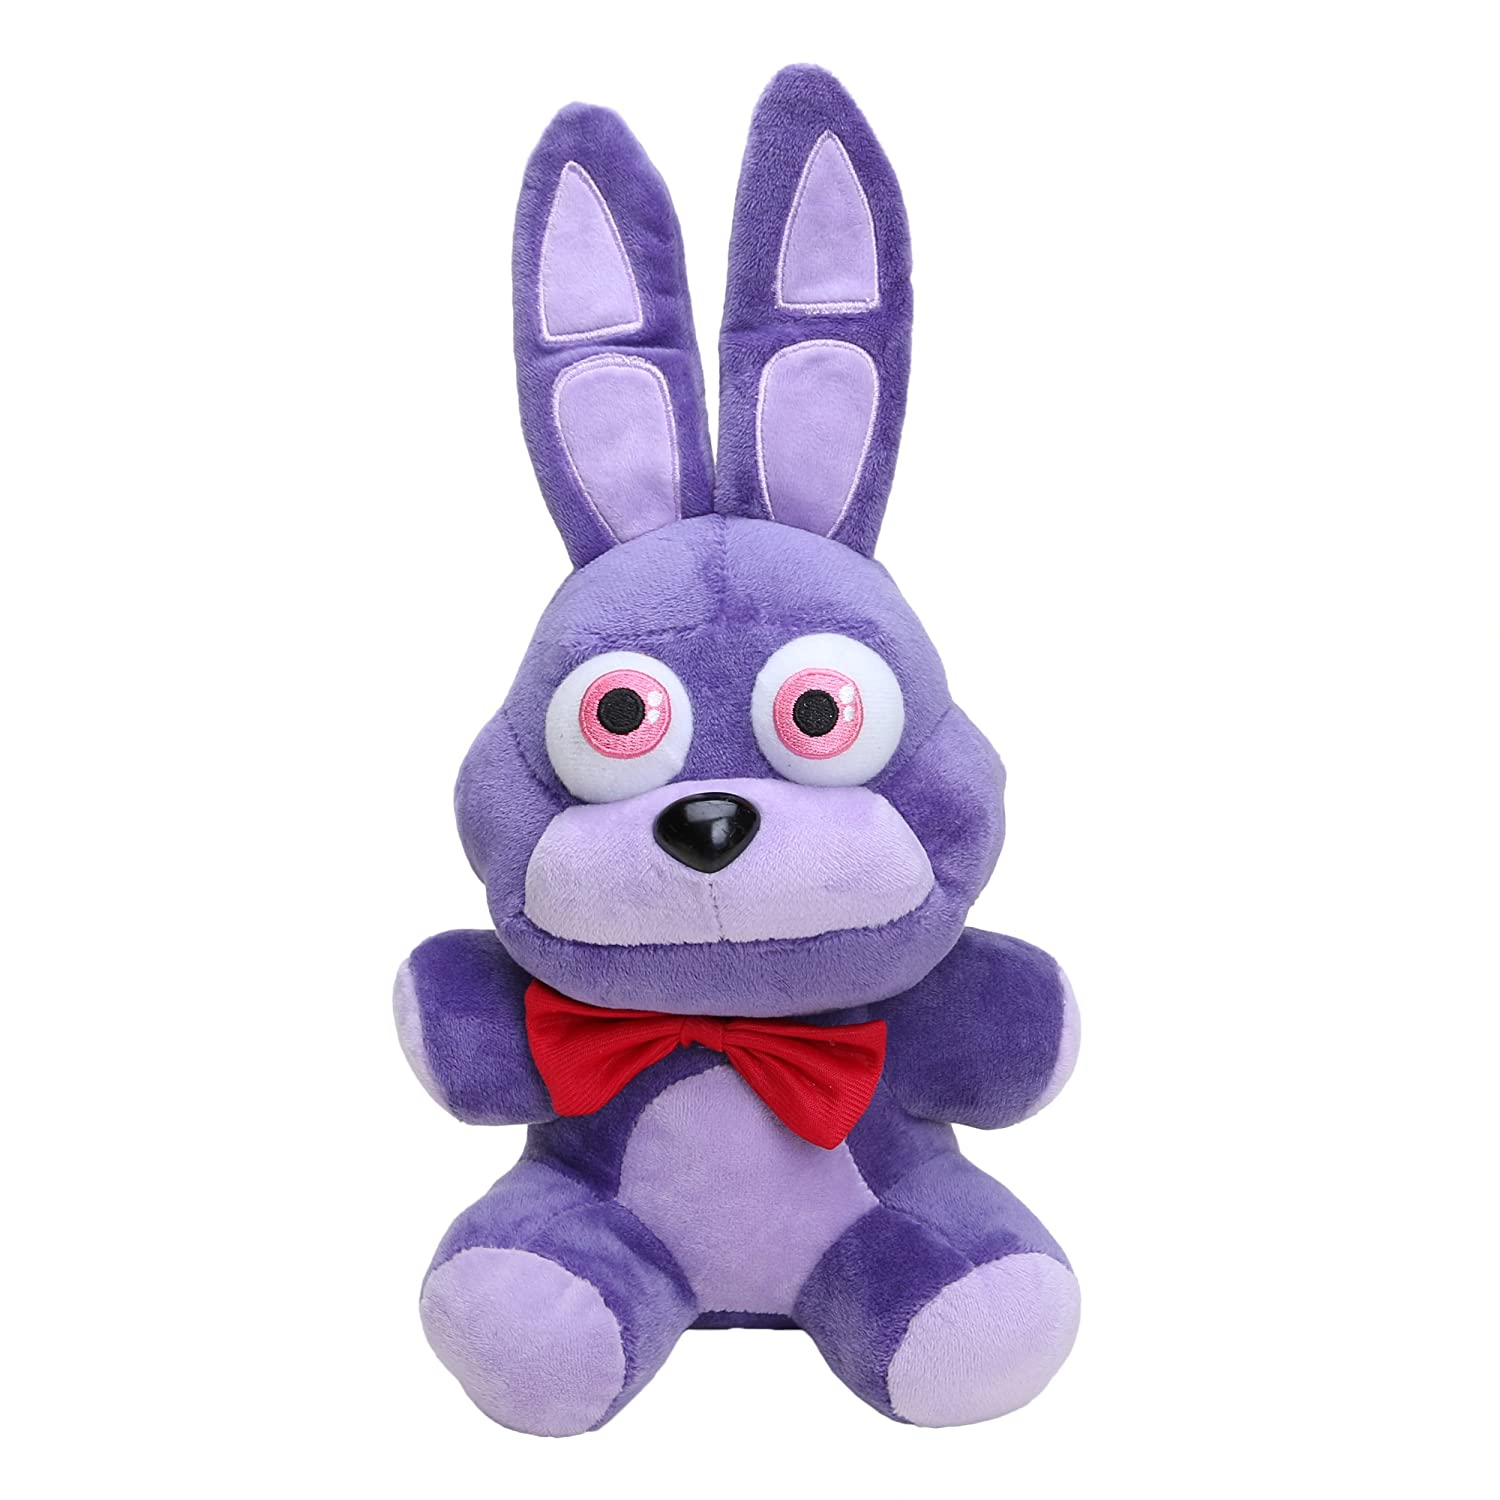 Fnaf Bonnie Plush For Sale